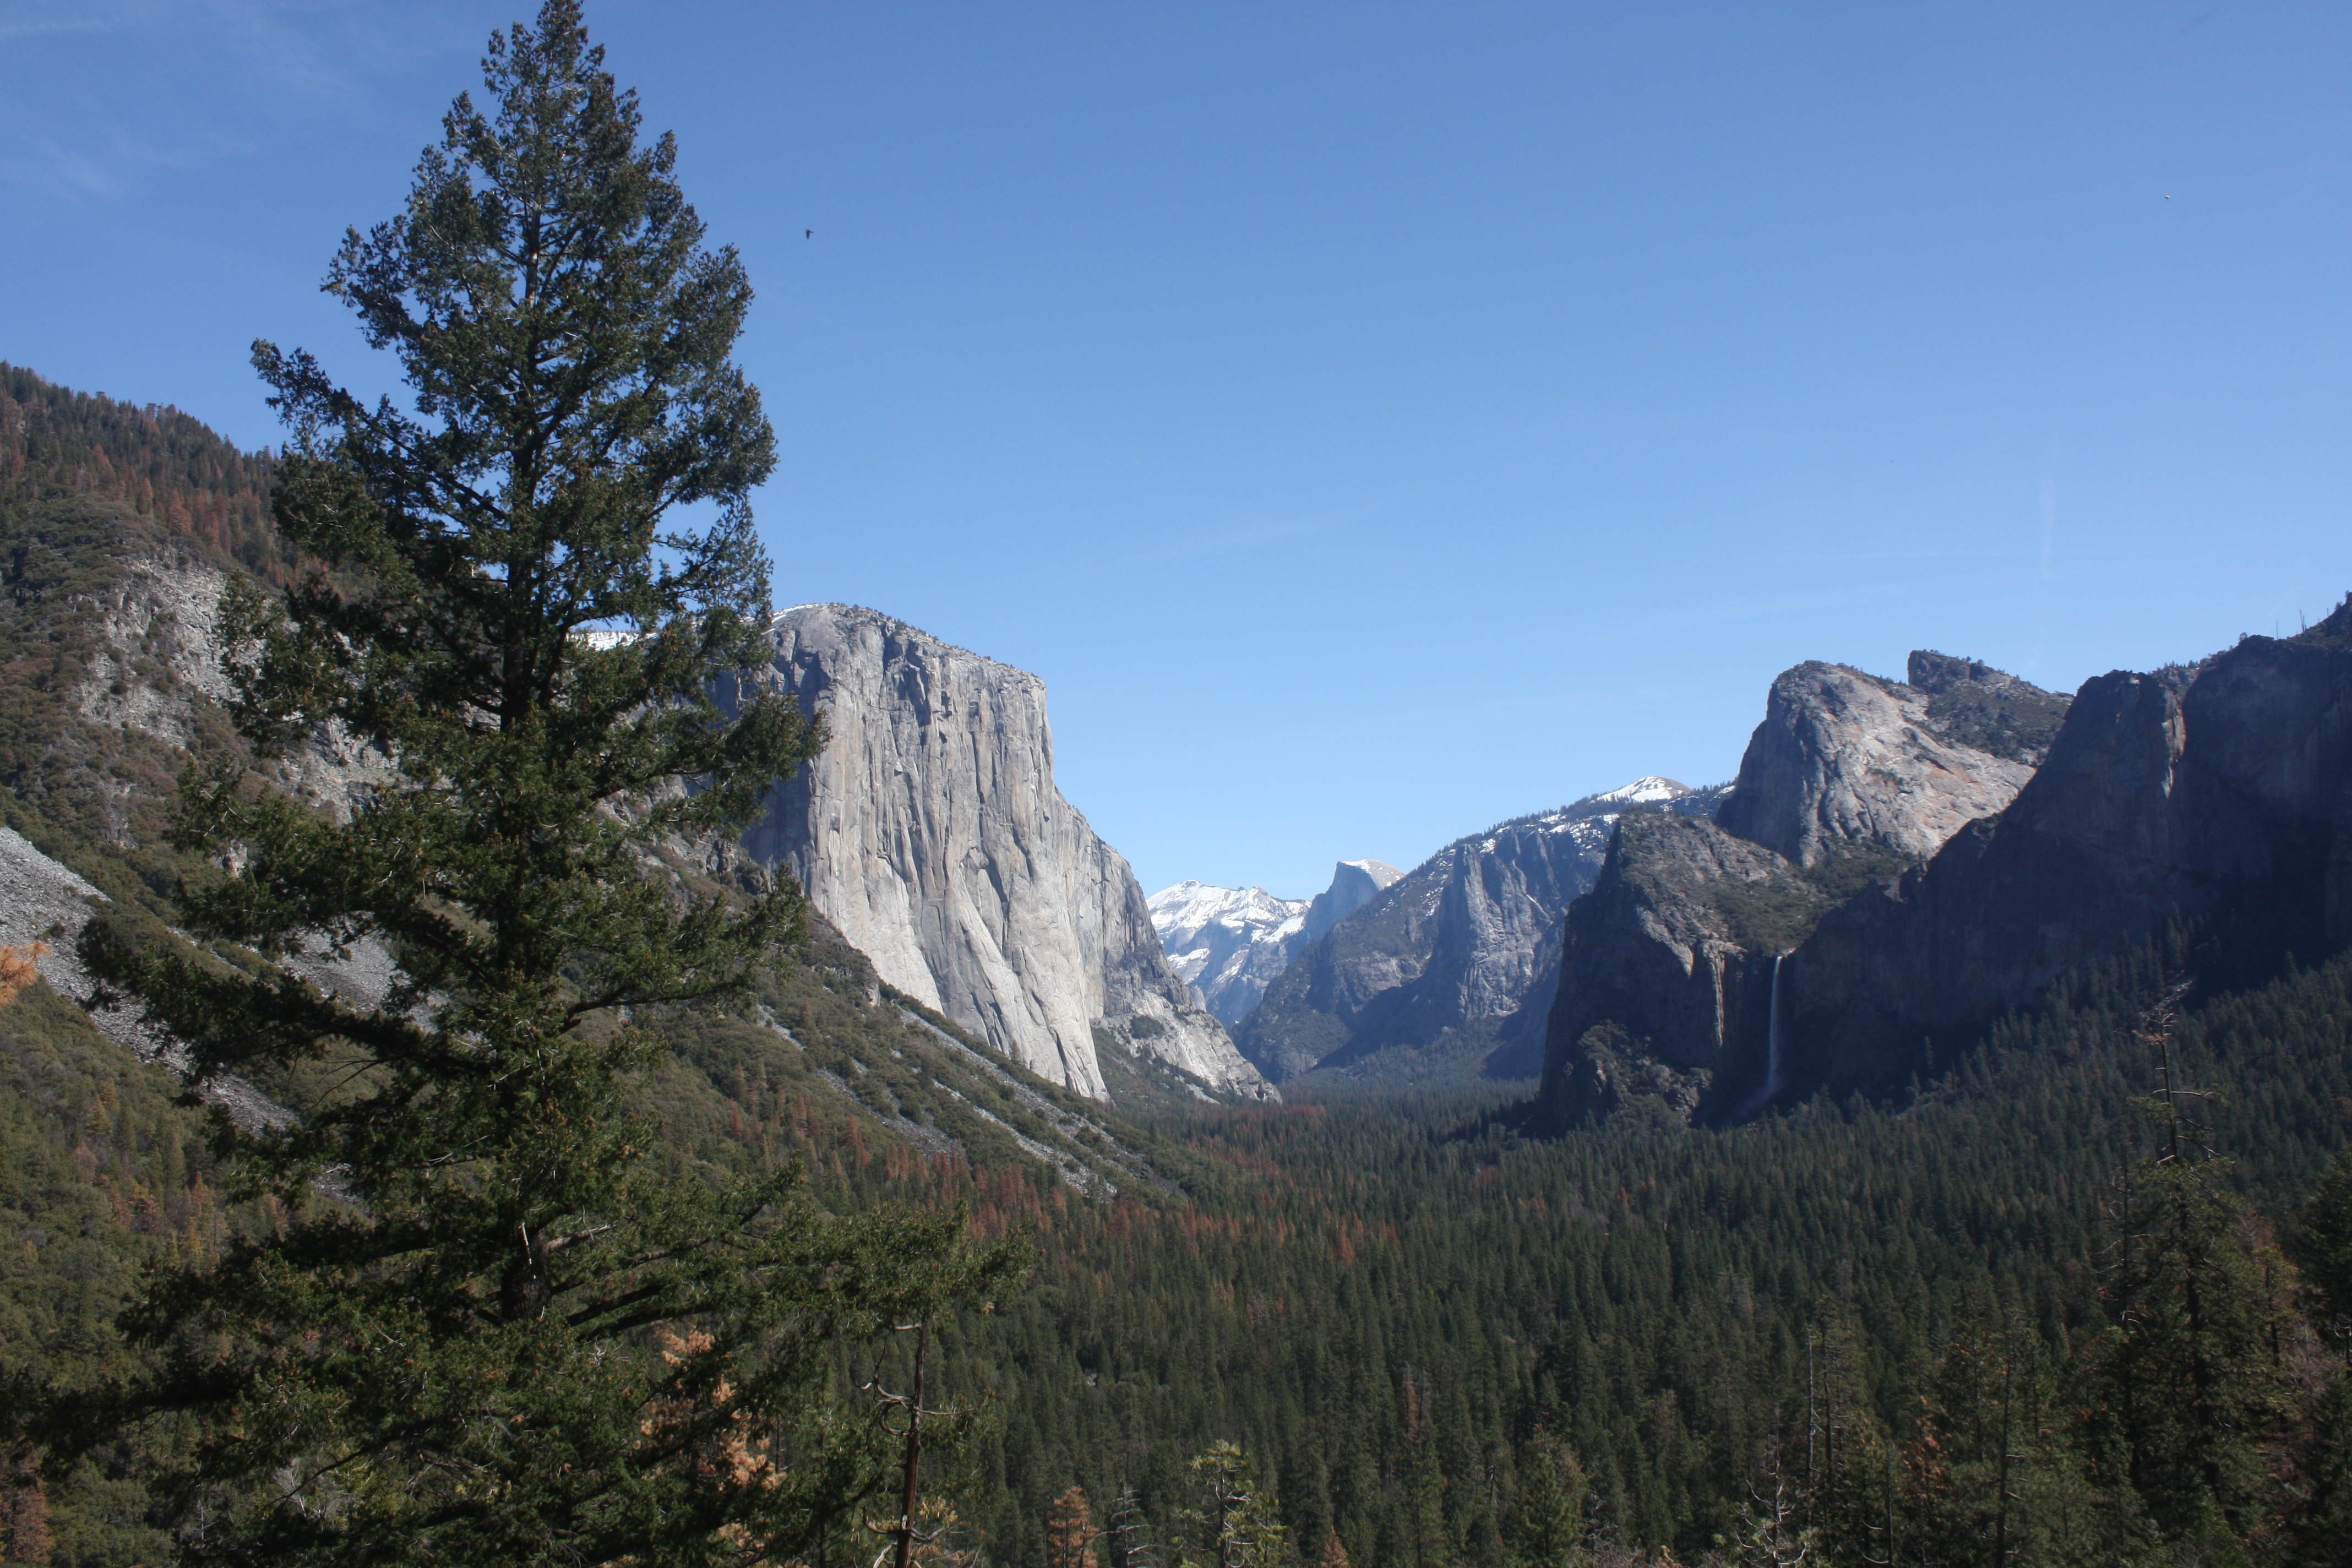 How to Maximize Your Time at Yosemite (Without Feeling Rushed!)